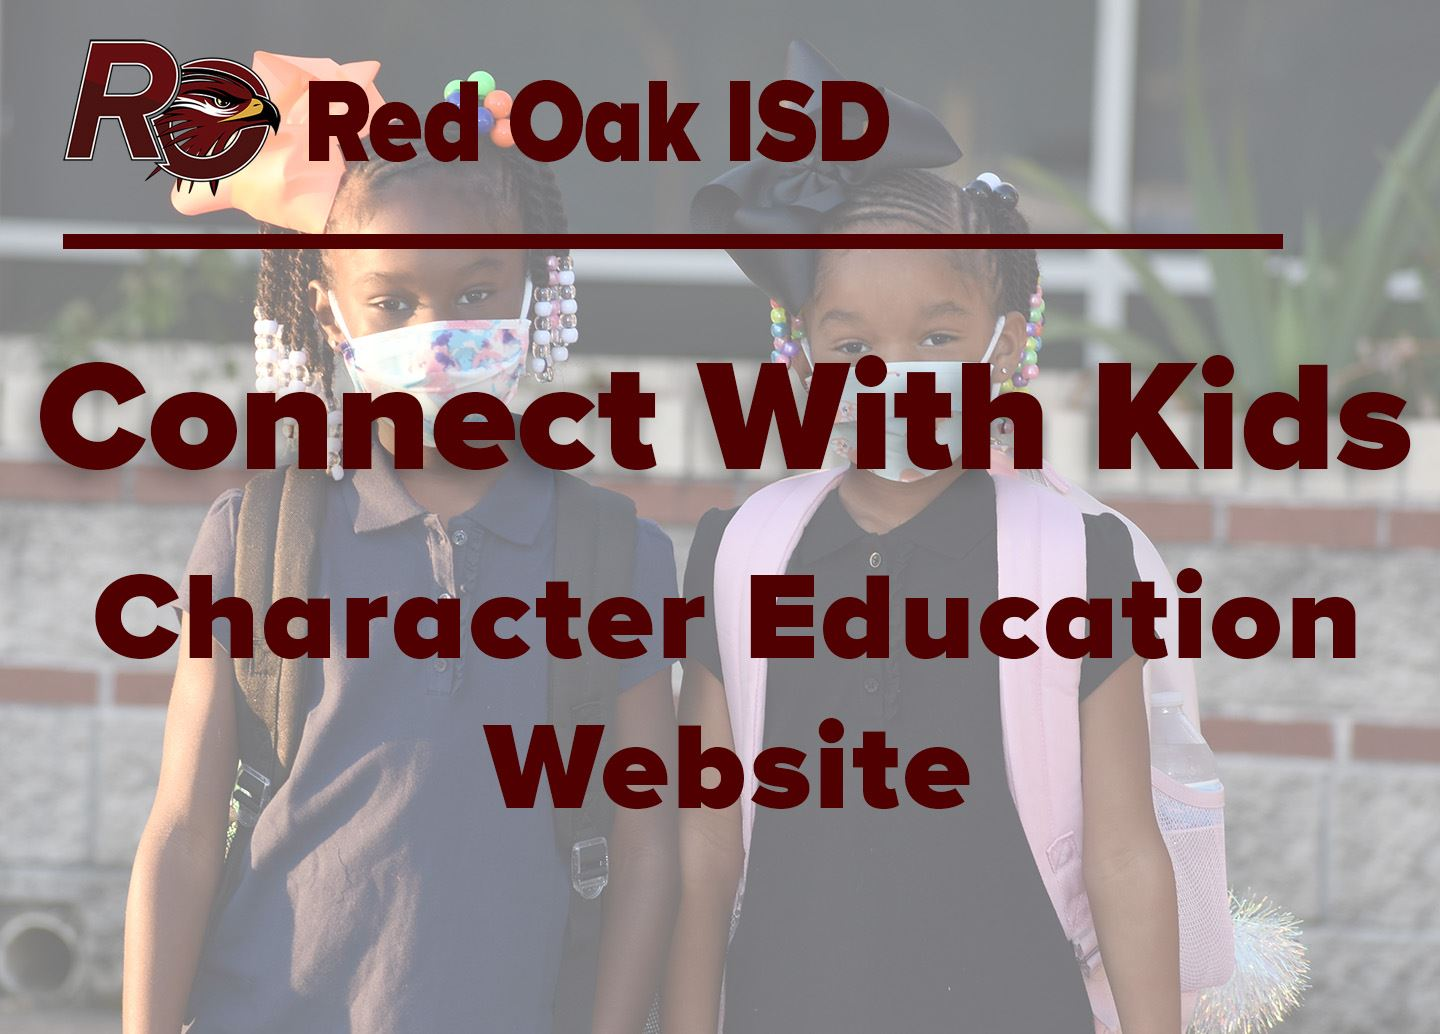 Red Oak ISD: Connect with Kids Character Education website